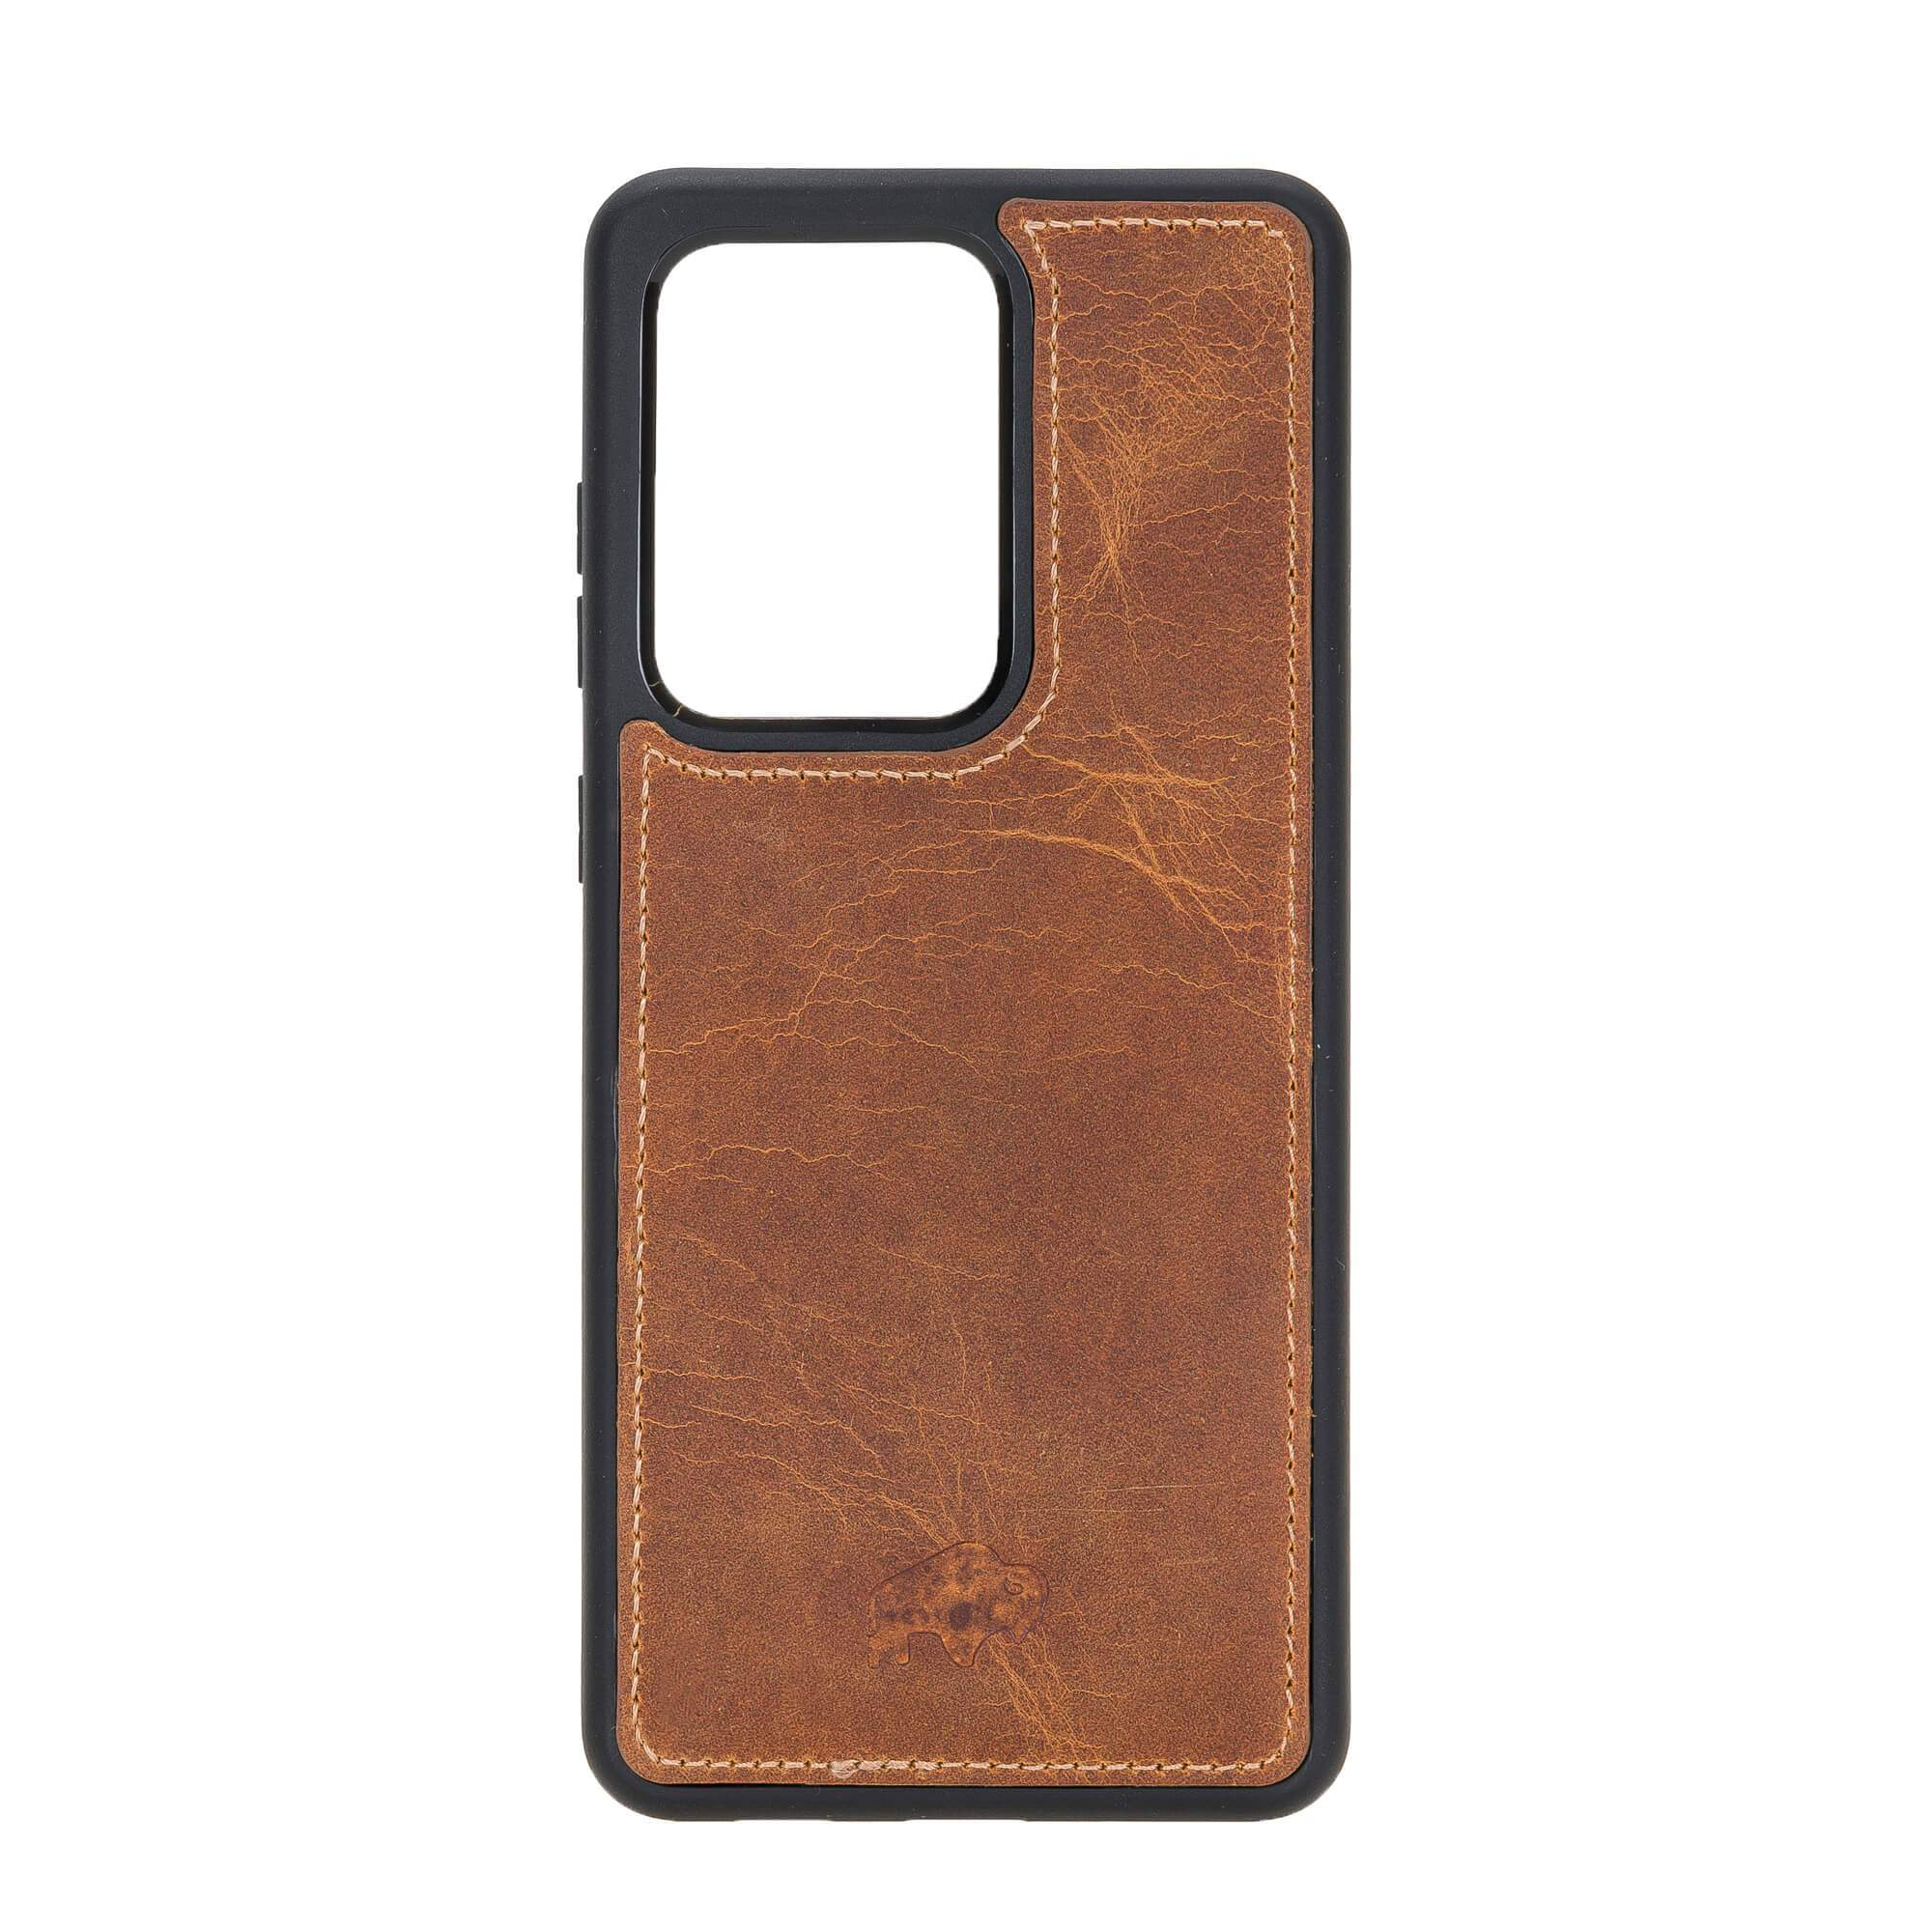 York 360 Degree Leather Snap On Case for Samsung Galaxy S20 ULTRA